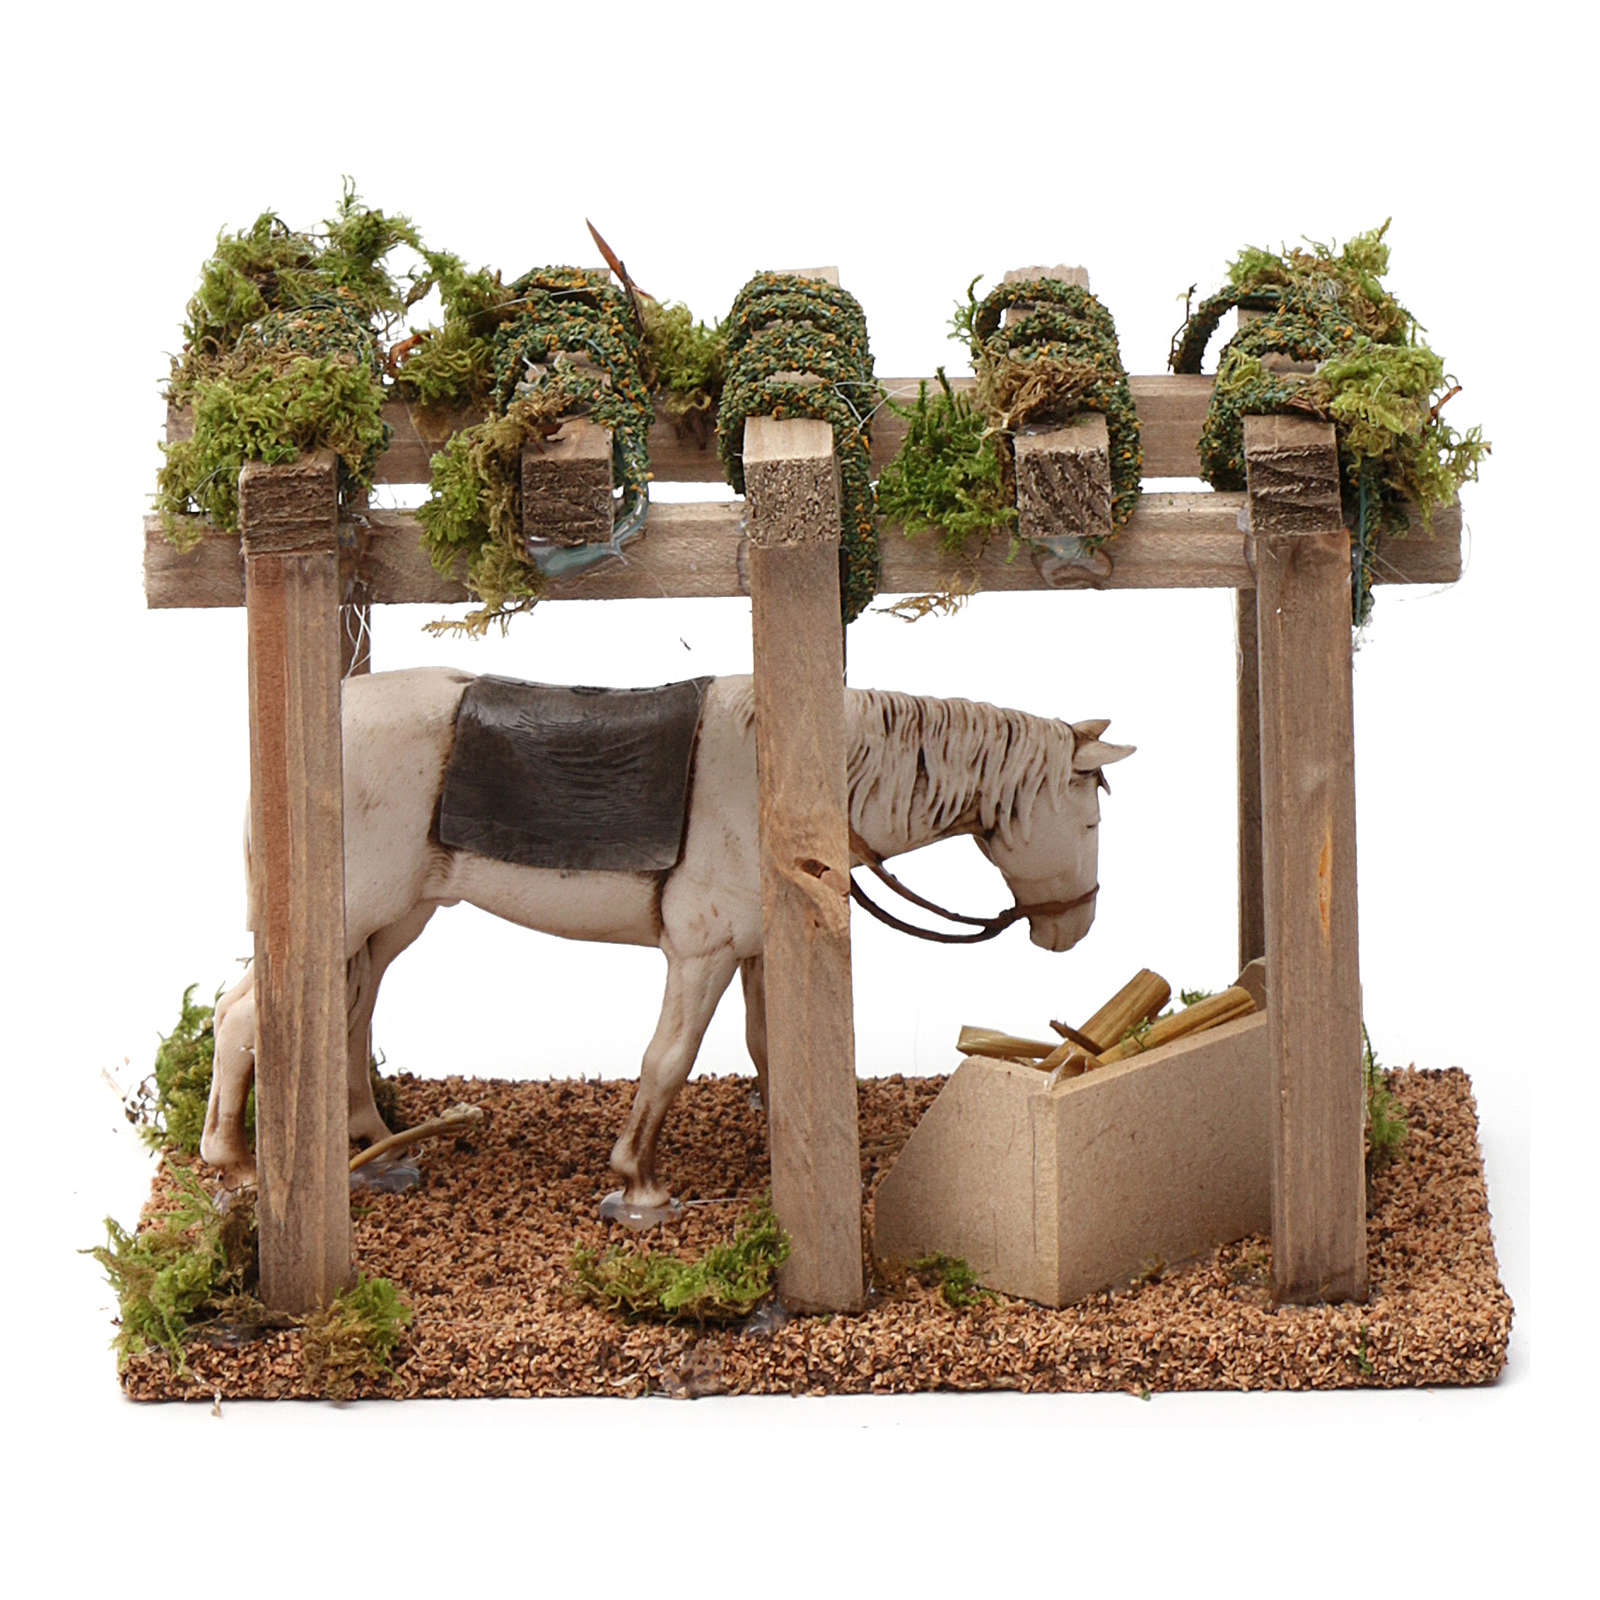 Porch with horse at the trough 10x20x10 cm for Nativity Scene 10 cm 3